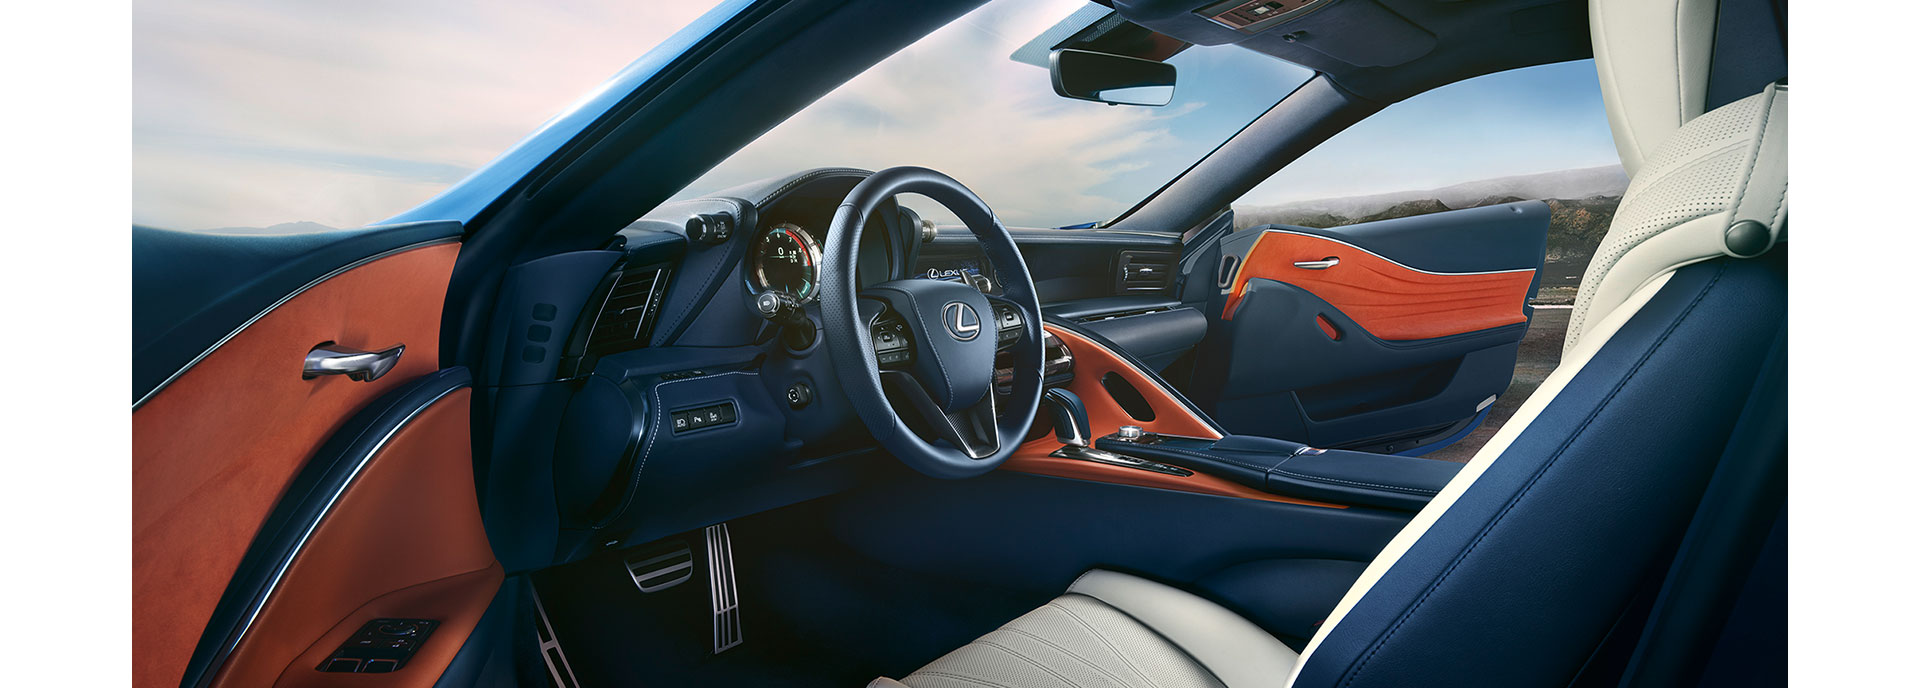 2017 Lexus LC 500h Interior Design